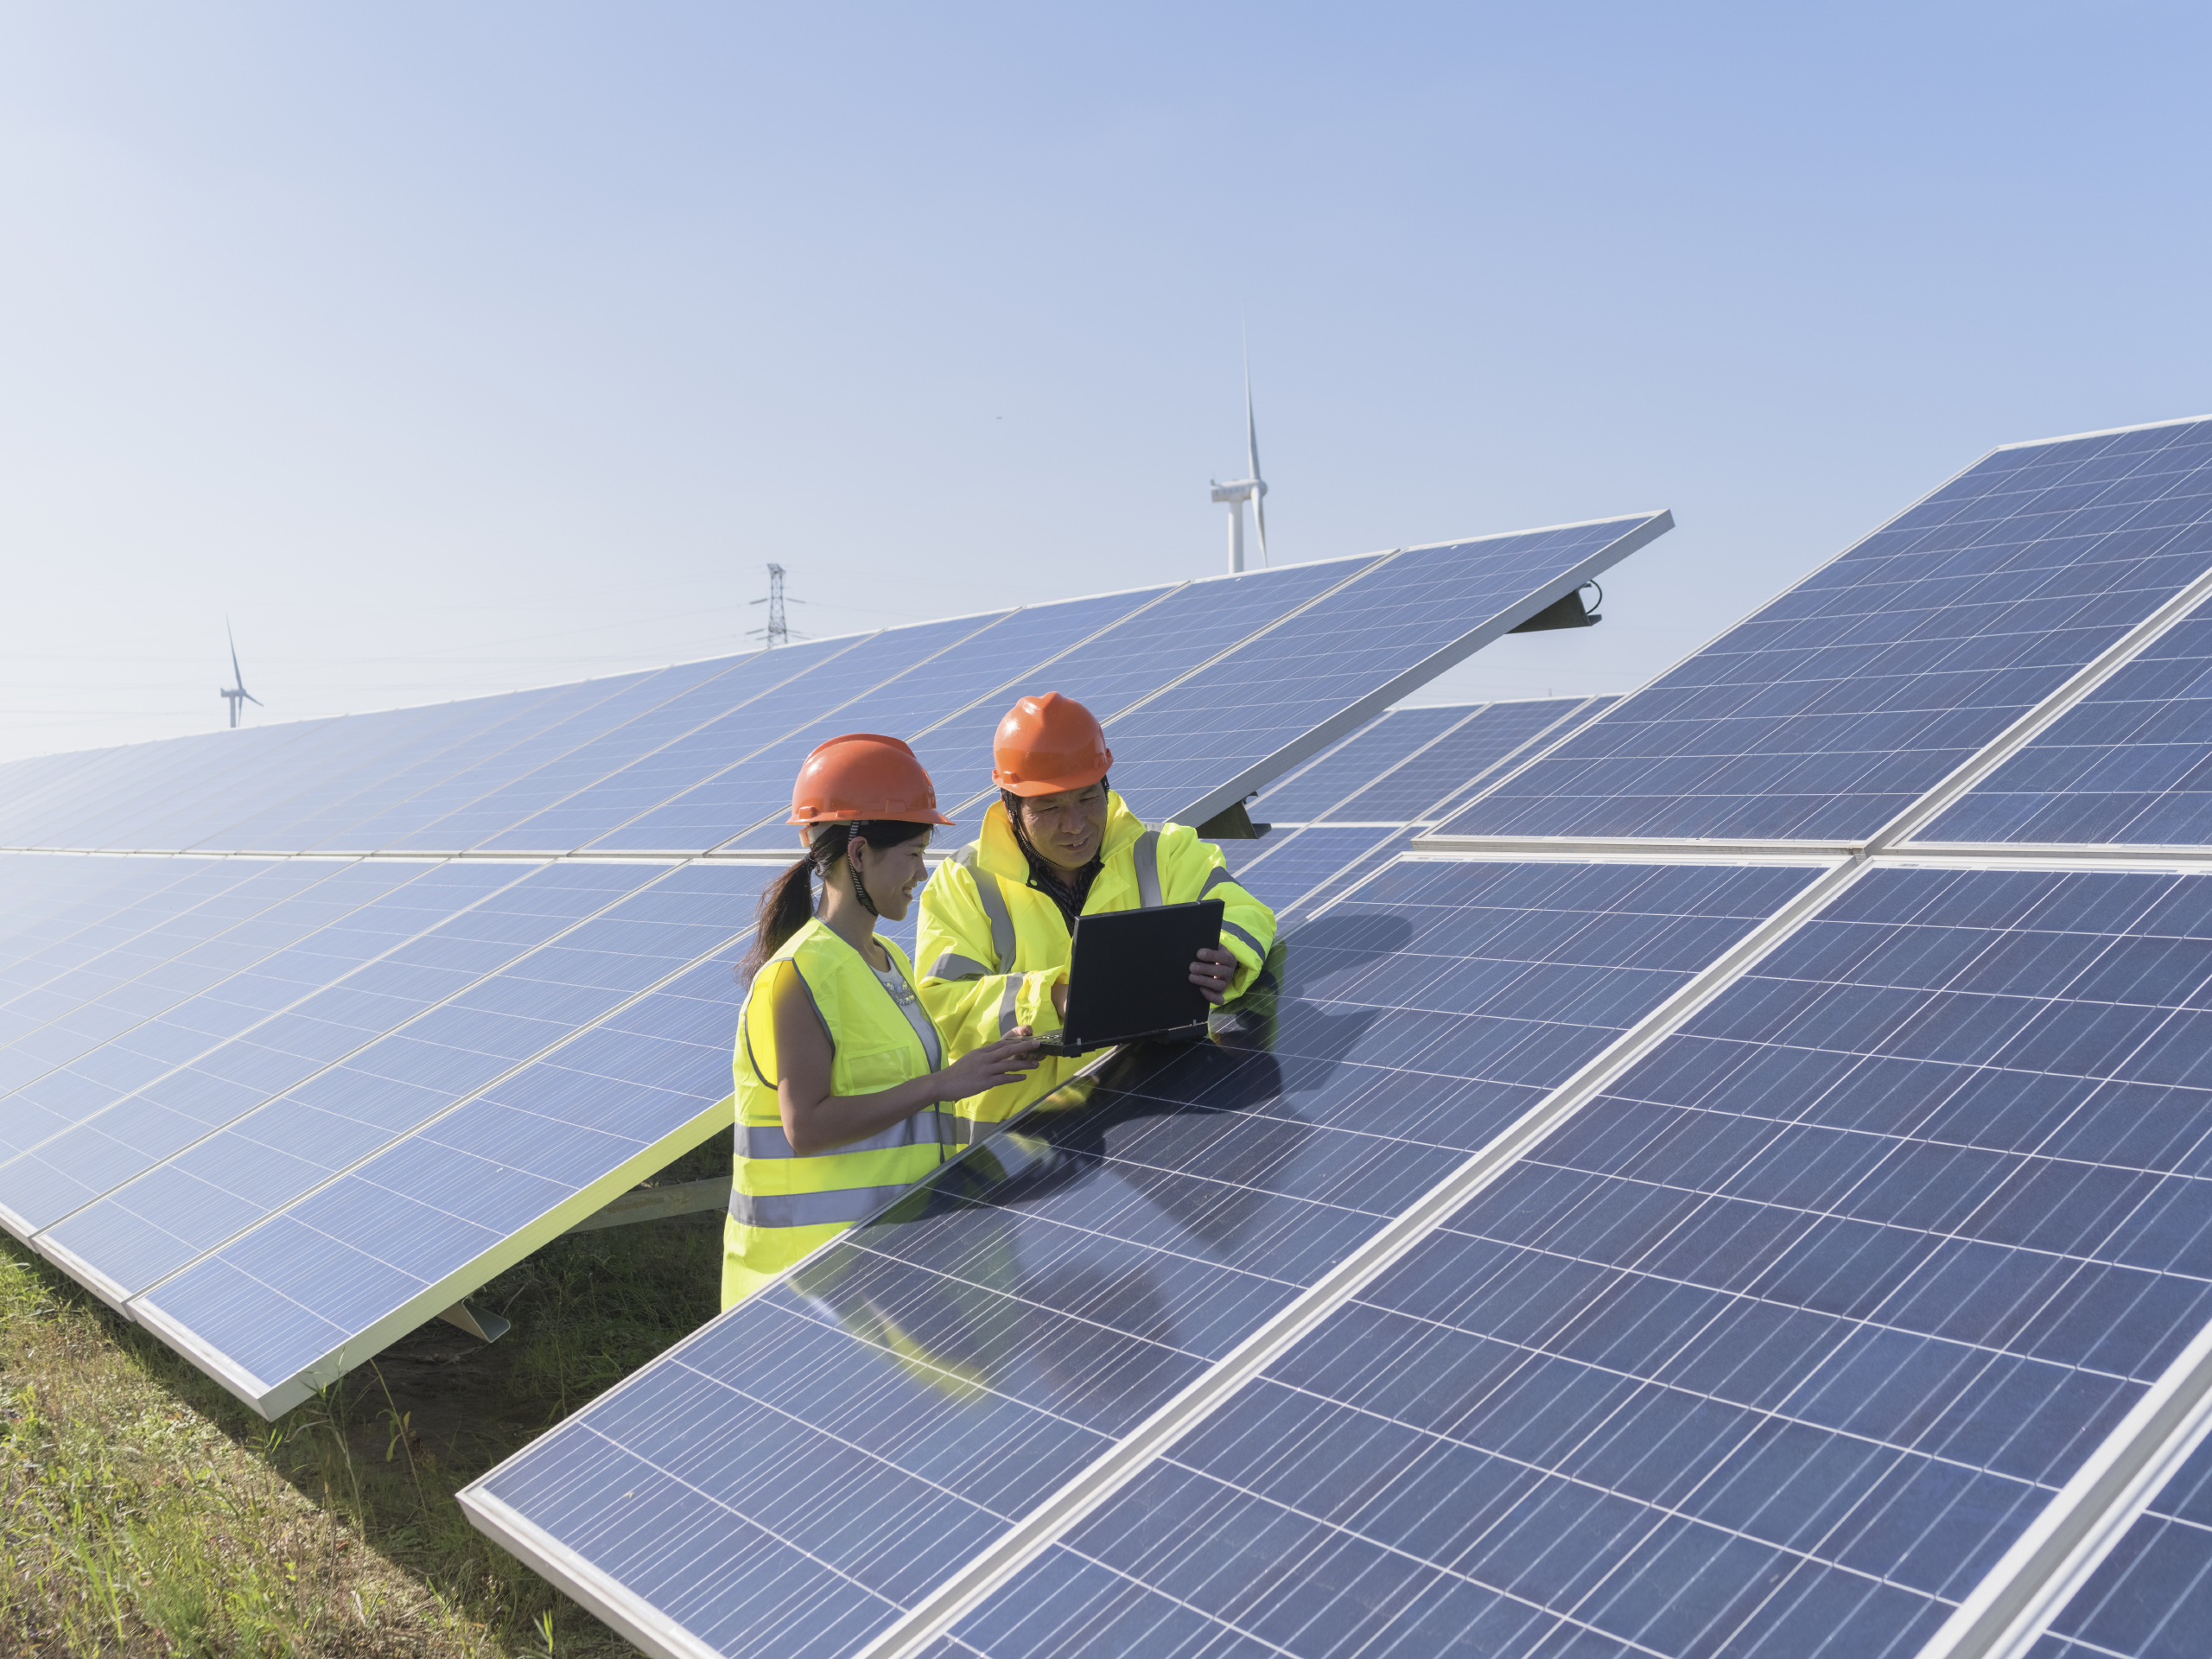 Solar Panel Utility Workers